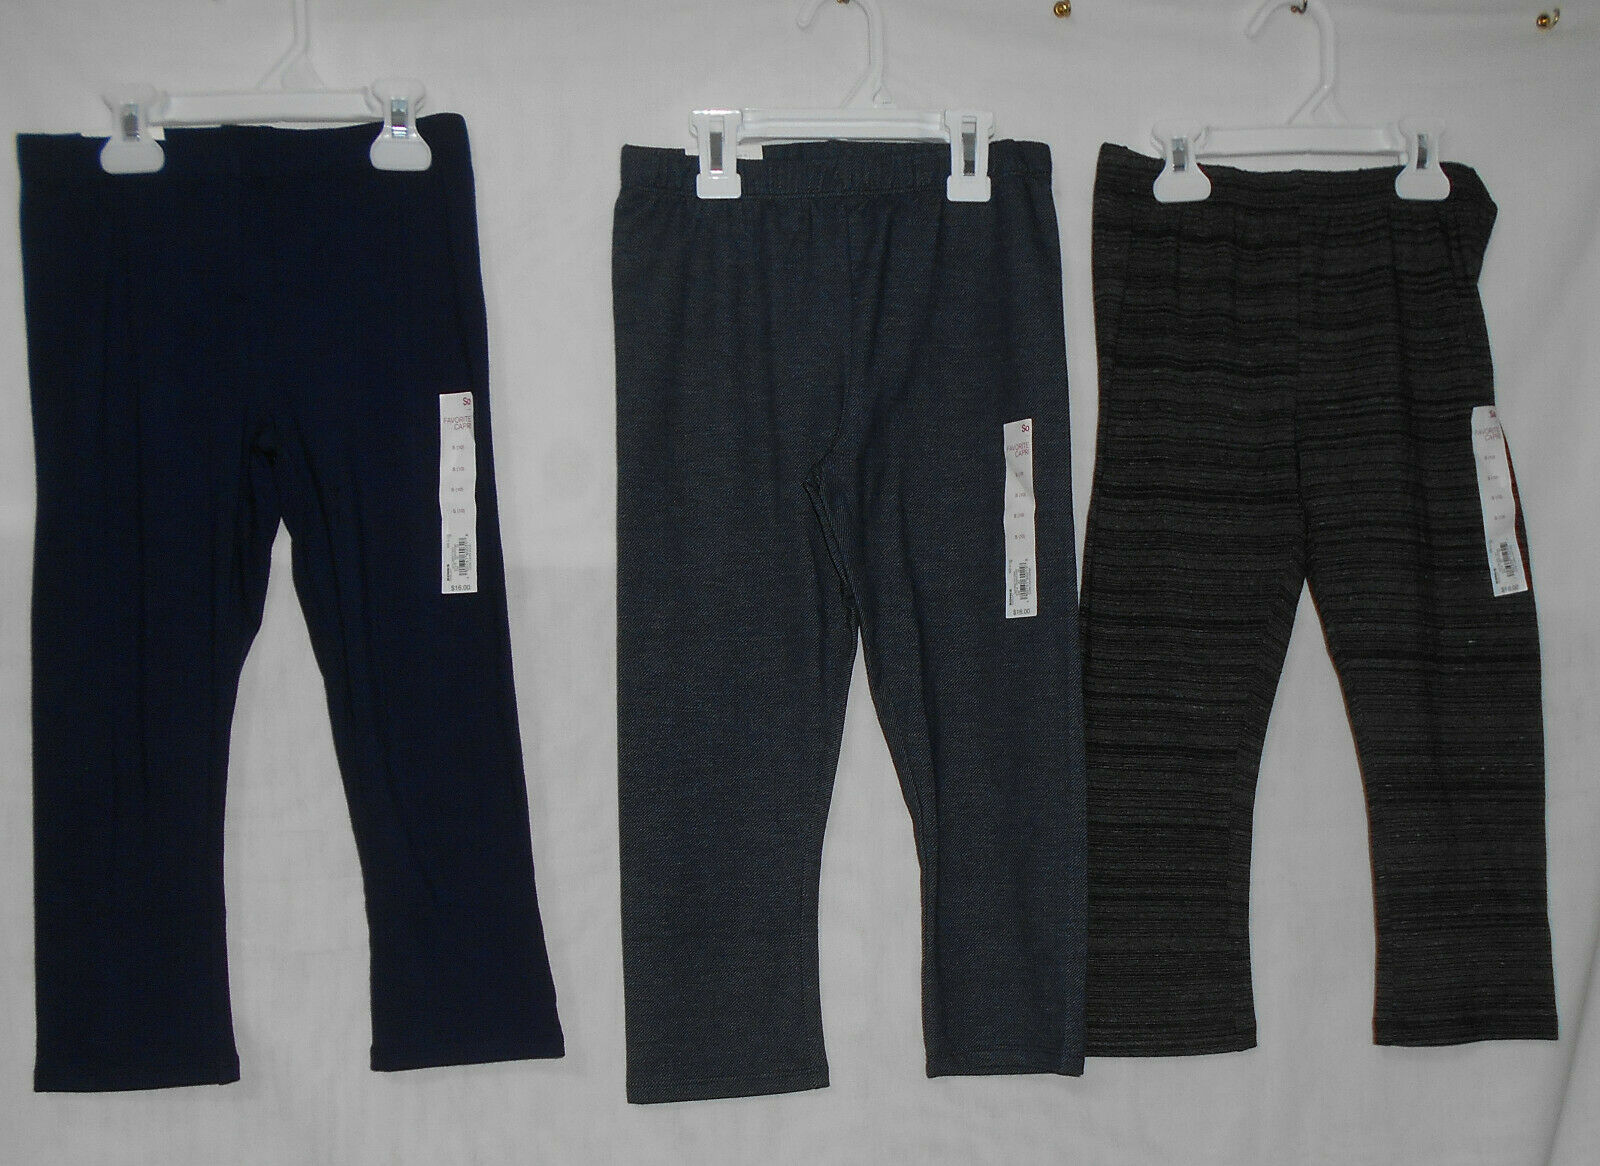 Primary image for SO Capri Pants Girls Size 10 Navy Blue Black Denim Capri Leggings New Lot of 3